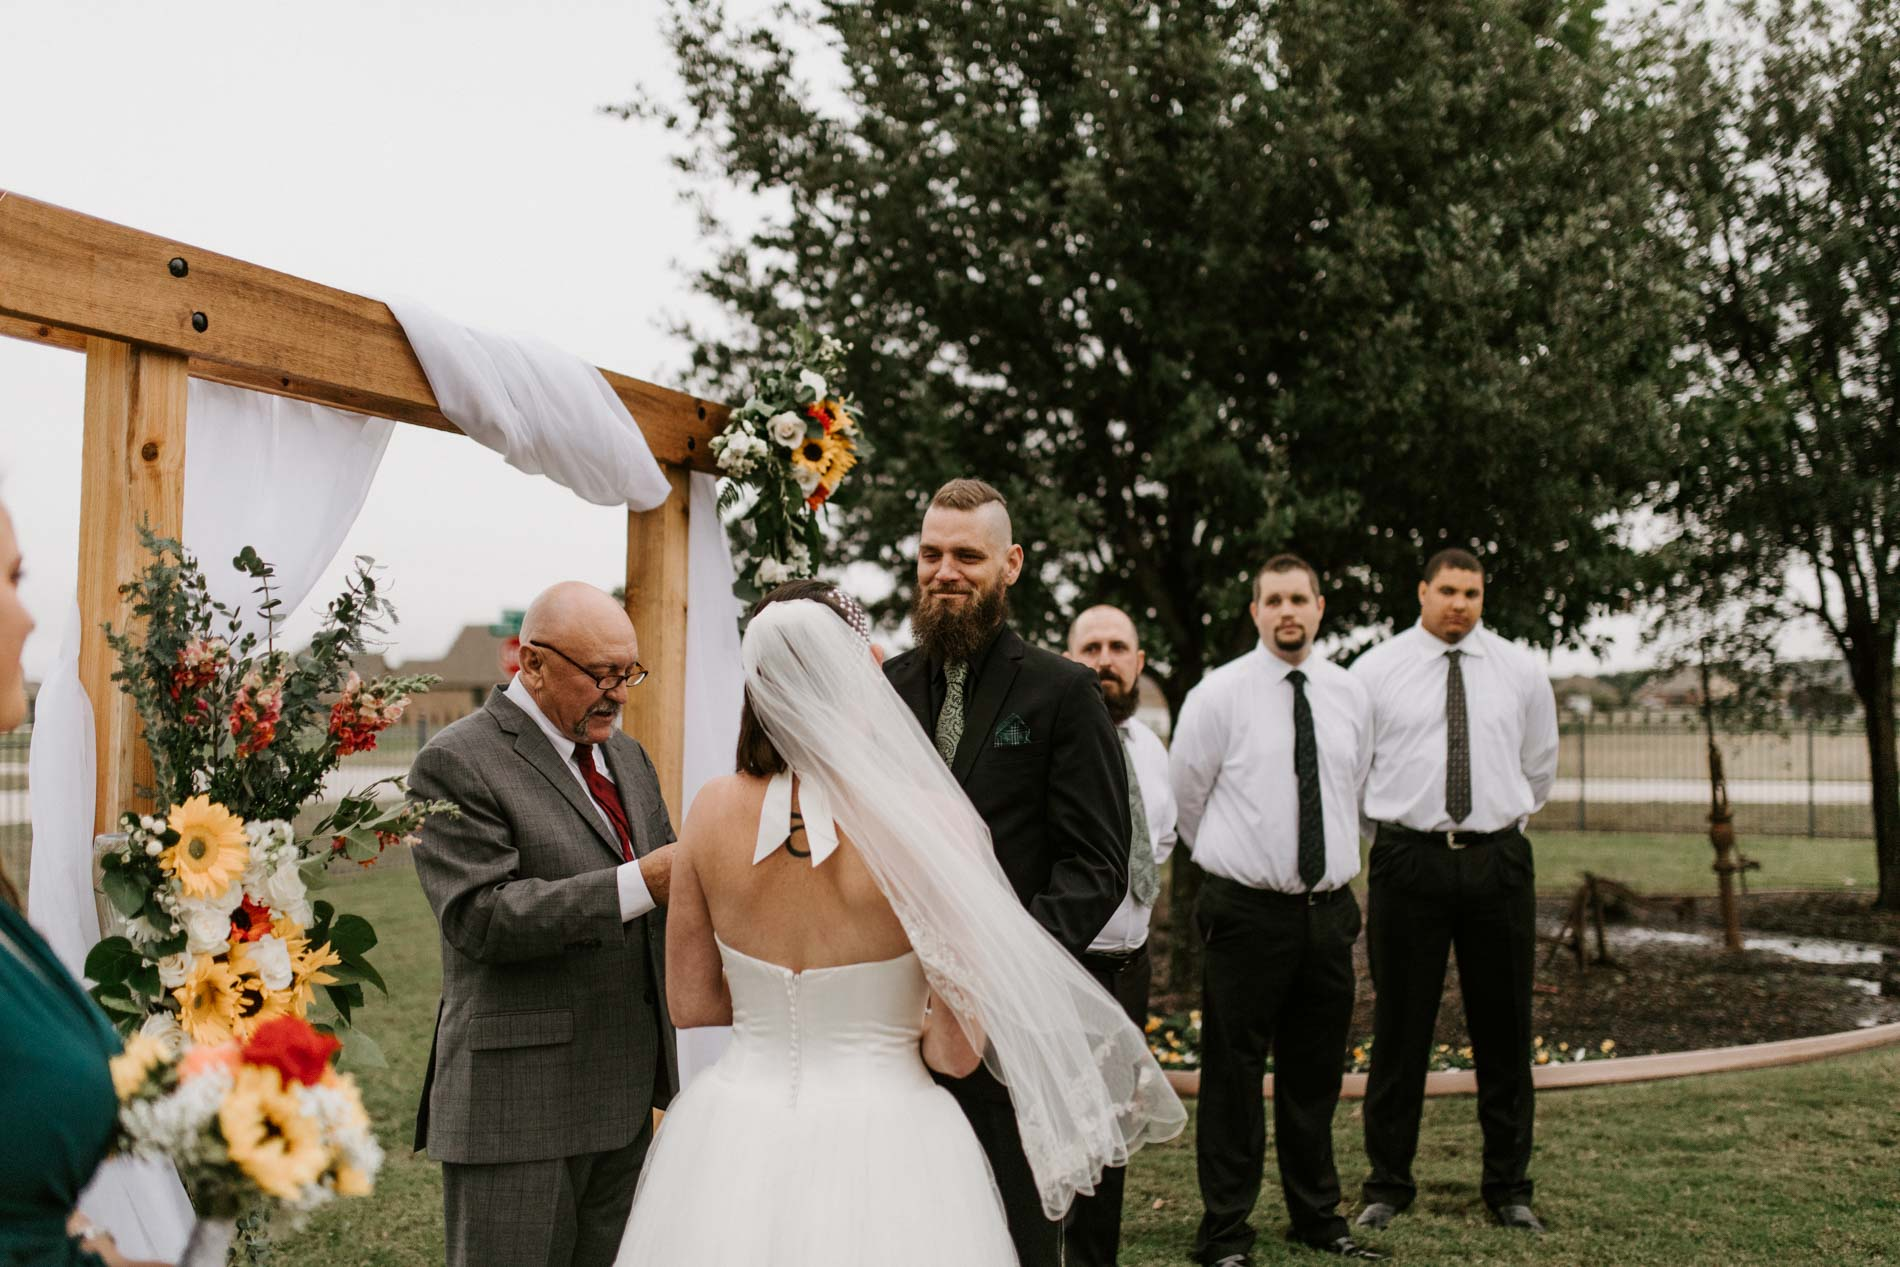 bride and groom standing at wedding ceremony